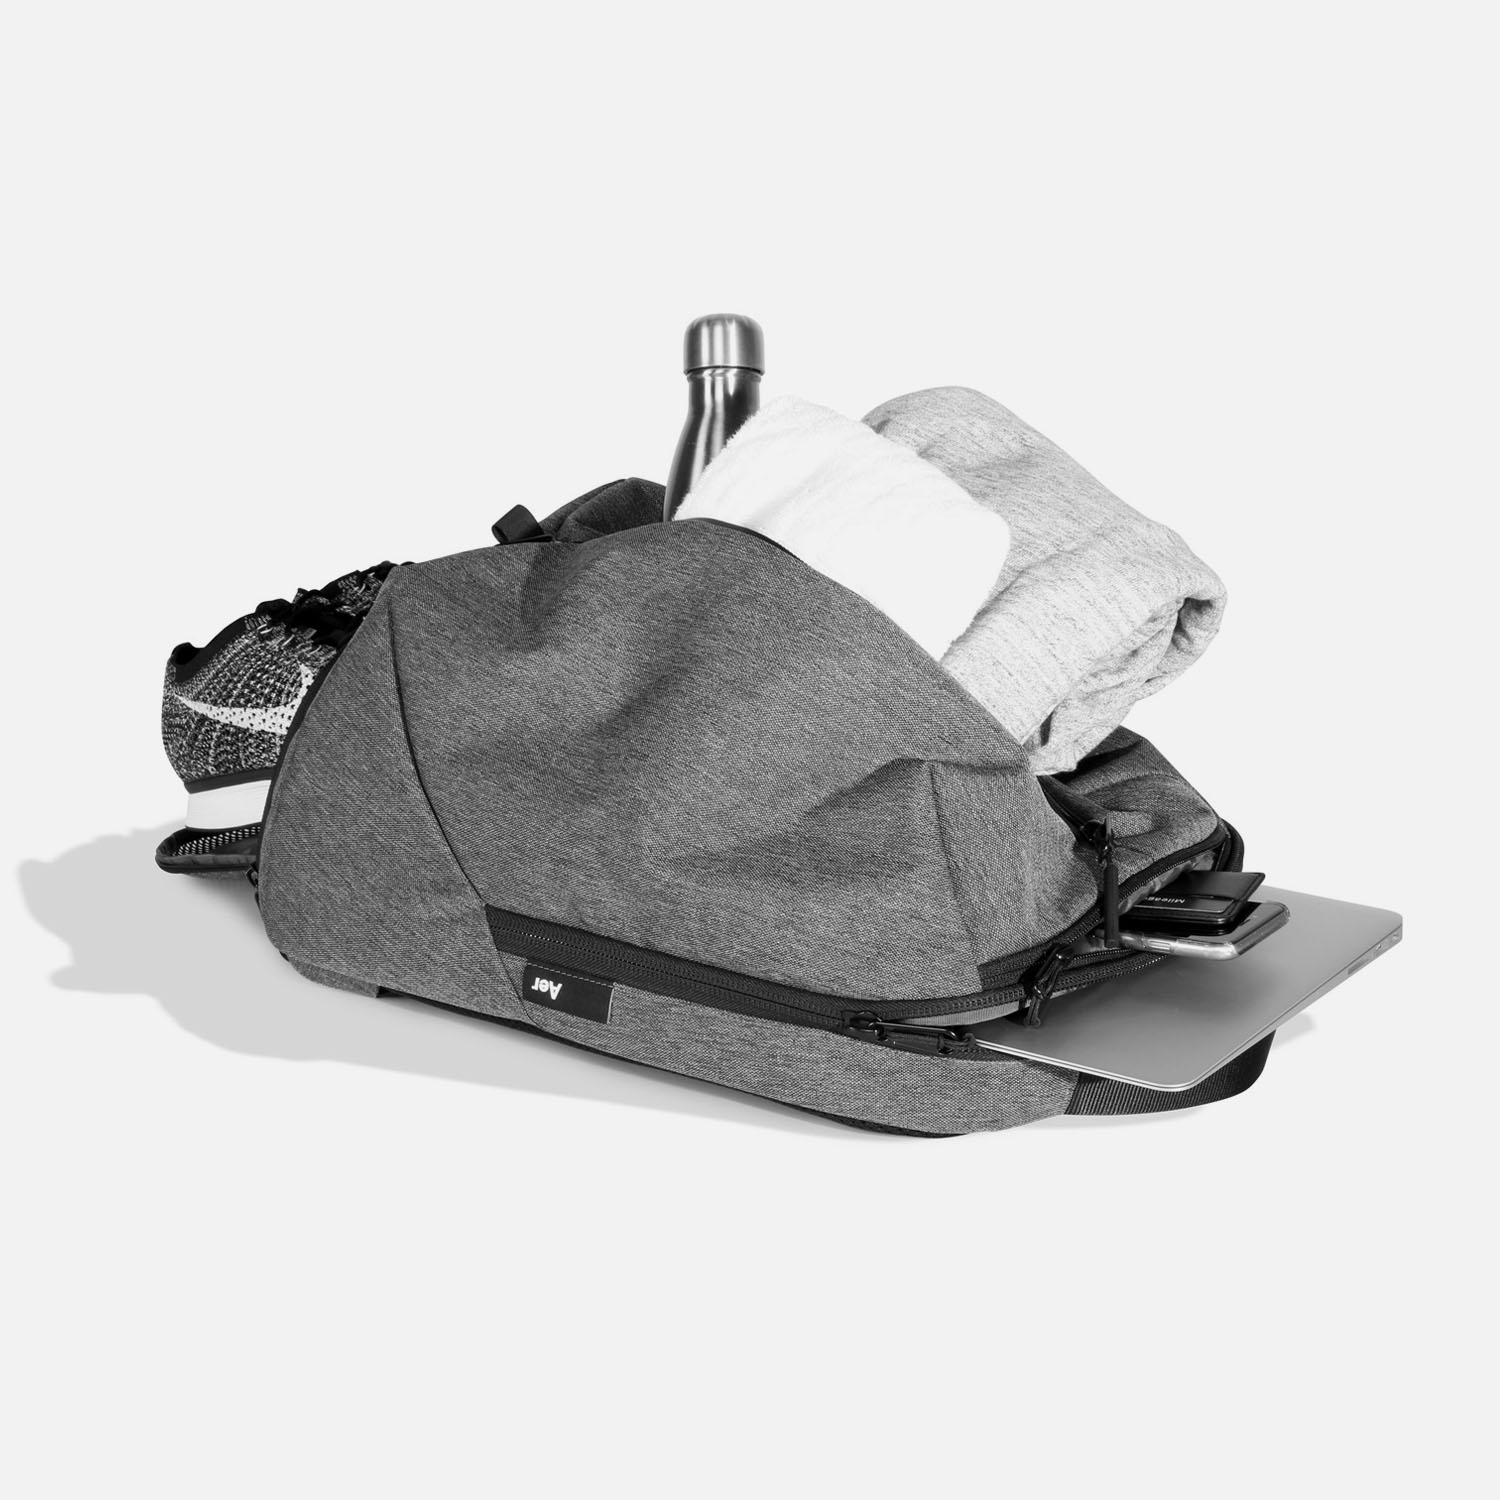 d8d540a828de Product Roundup  Top 10 Backpacks for the Remote Worker